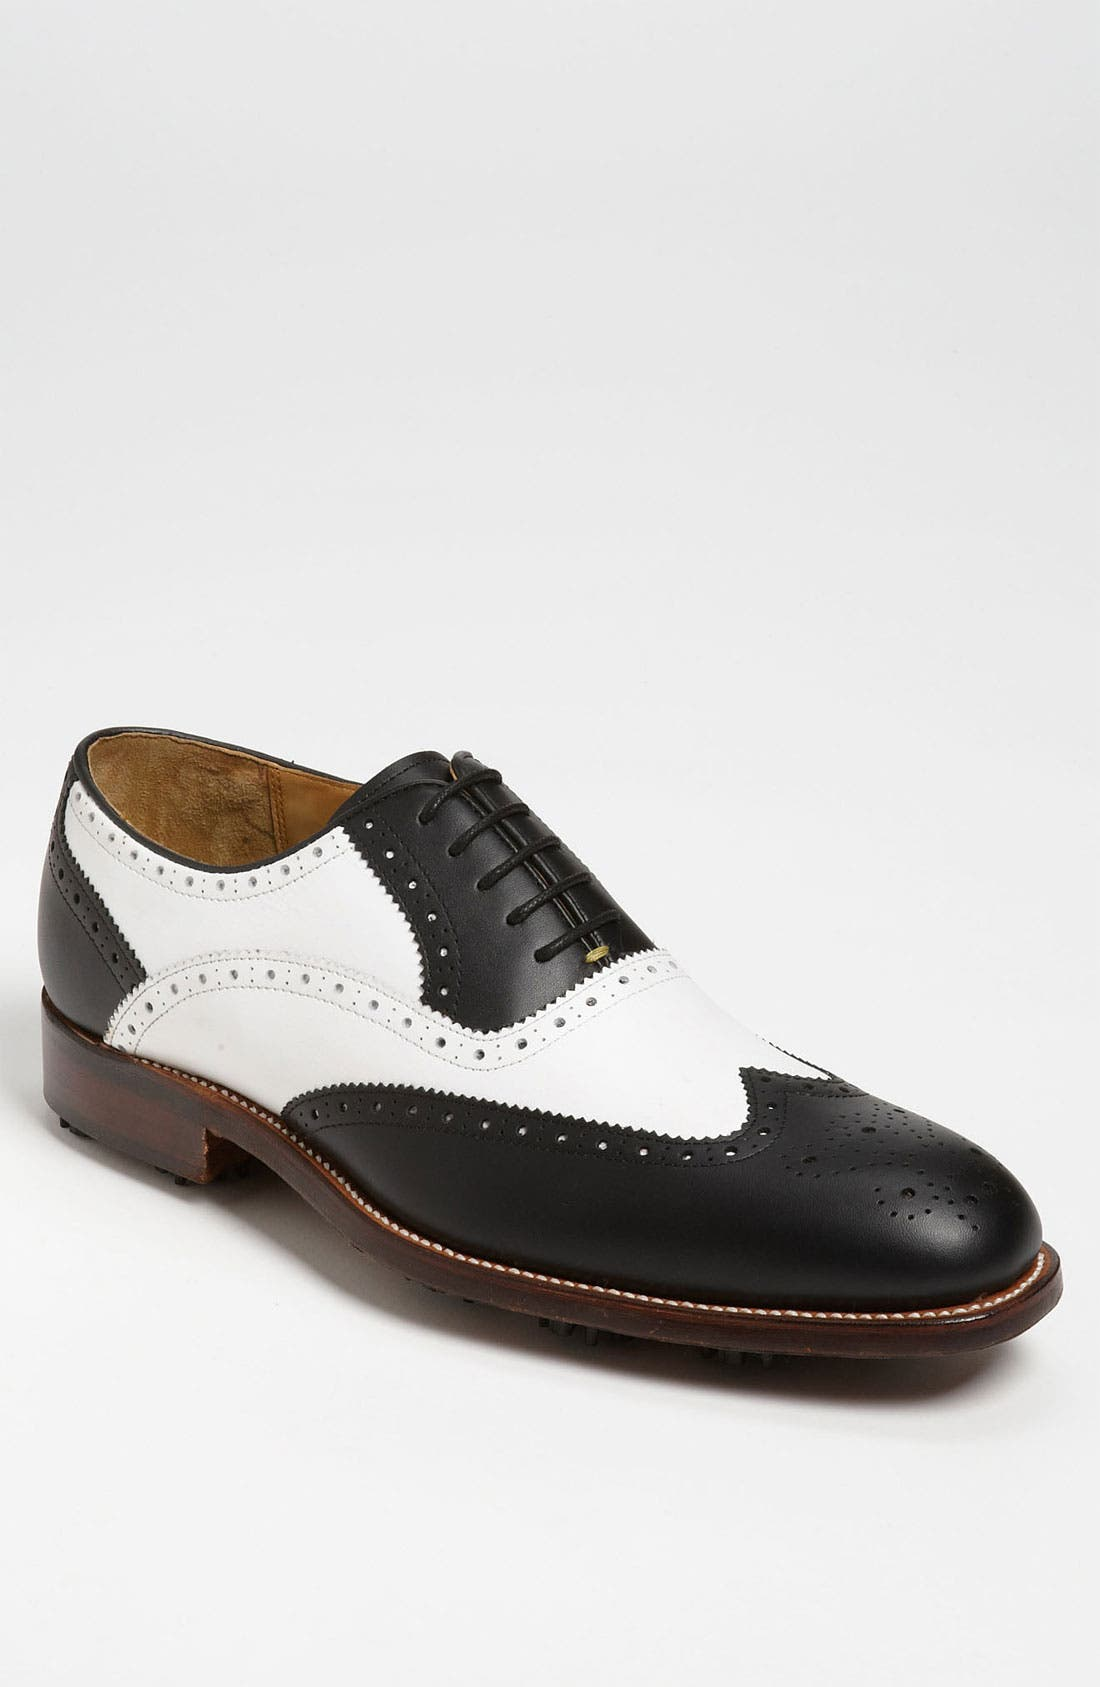 Main Image - Oliver Sweeney 'Royale' Wingtip Golf Shoe (Men)